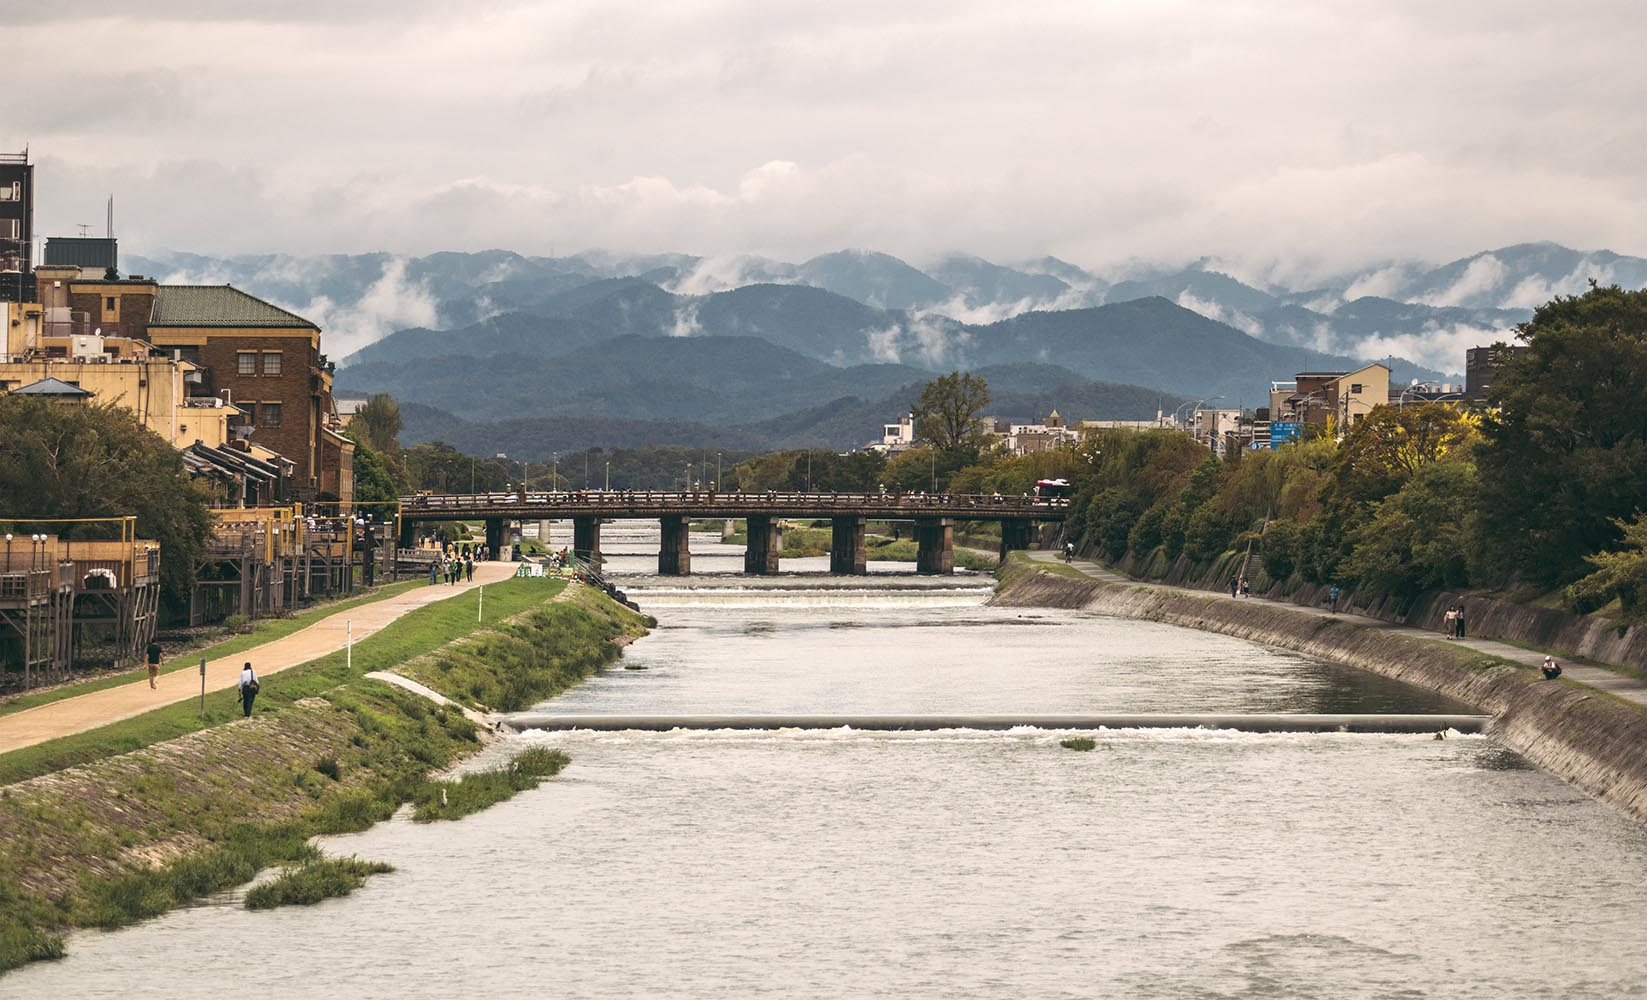 Bridge and mountains in Kyoto, Japan